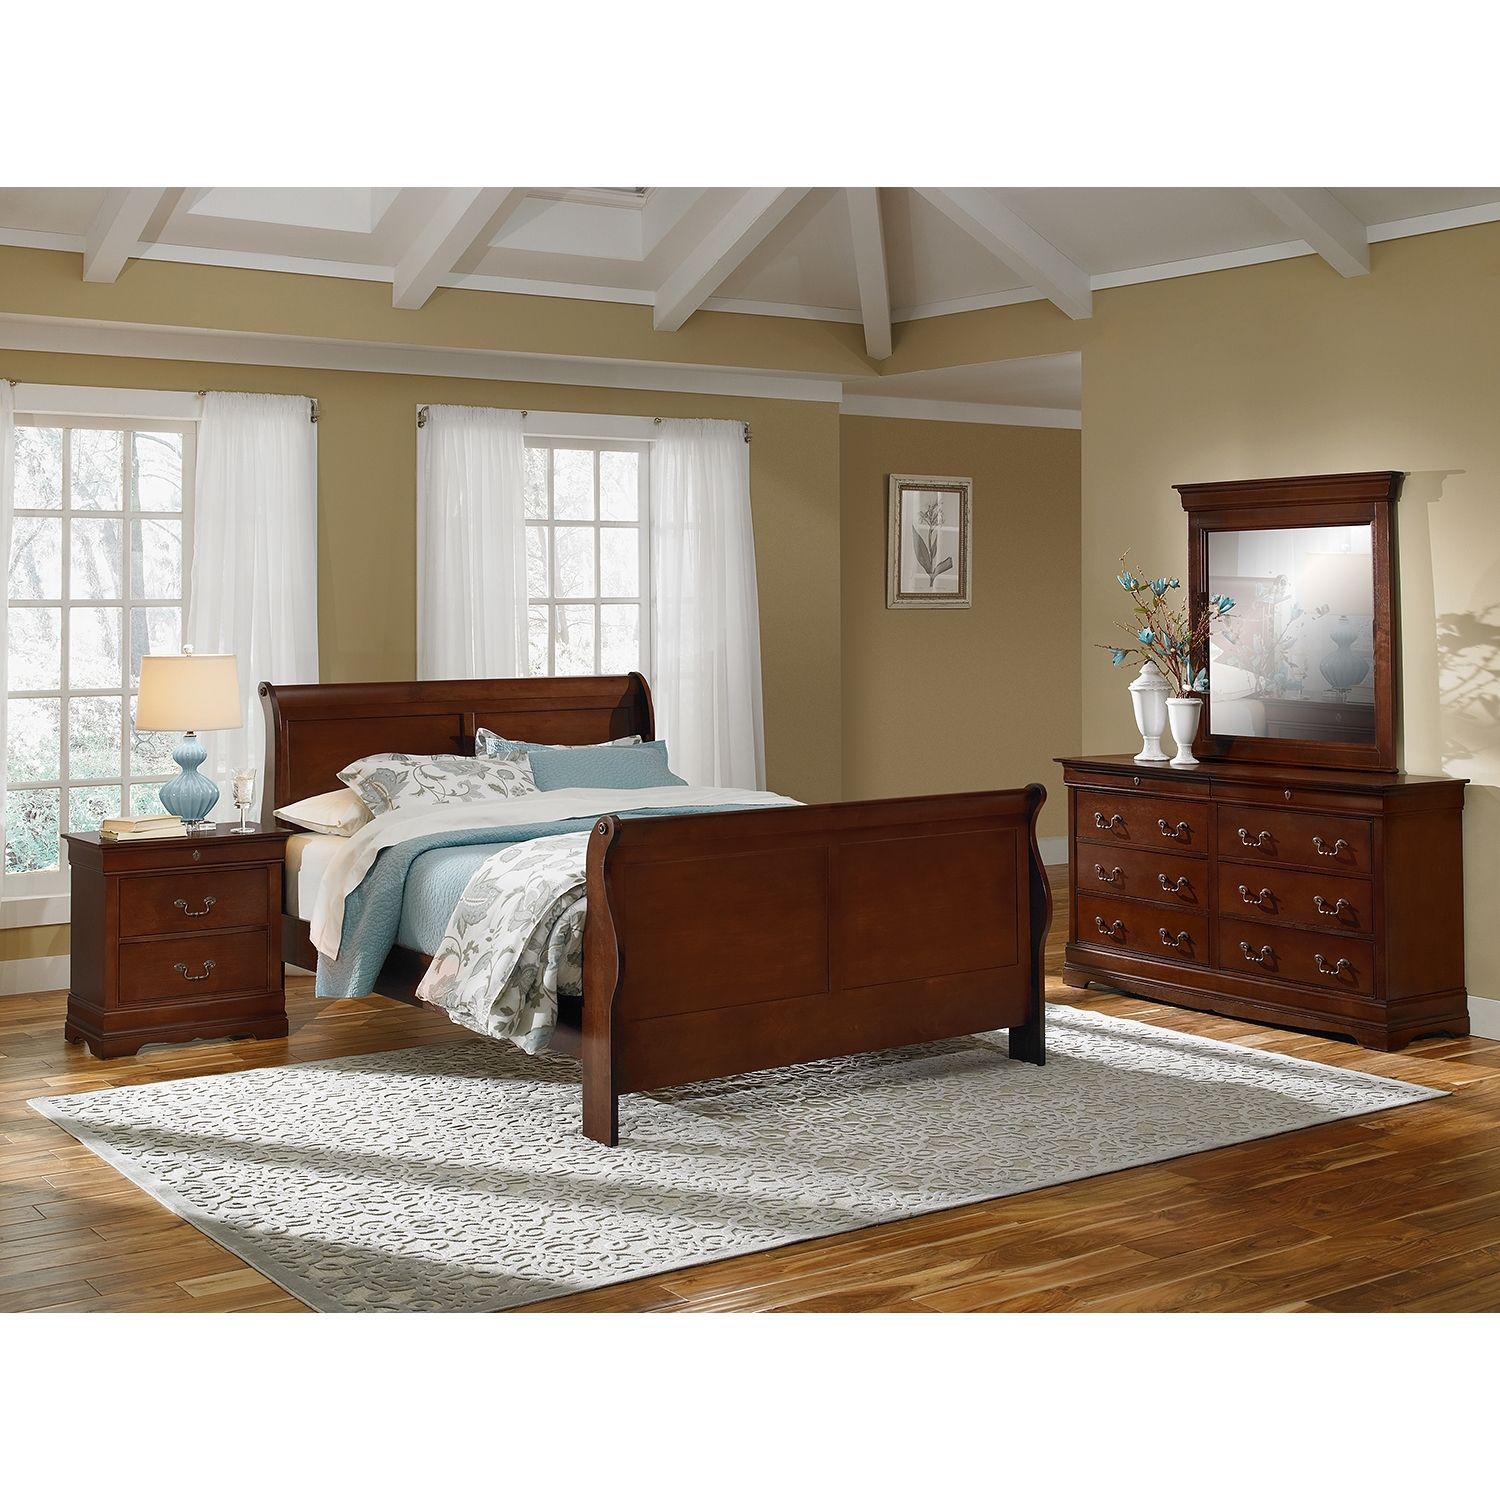 neo classic 6 piece bedroom set with nightstand dresser and mirror rh pinterest com